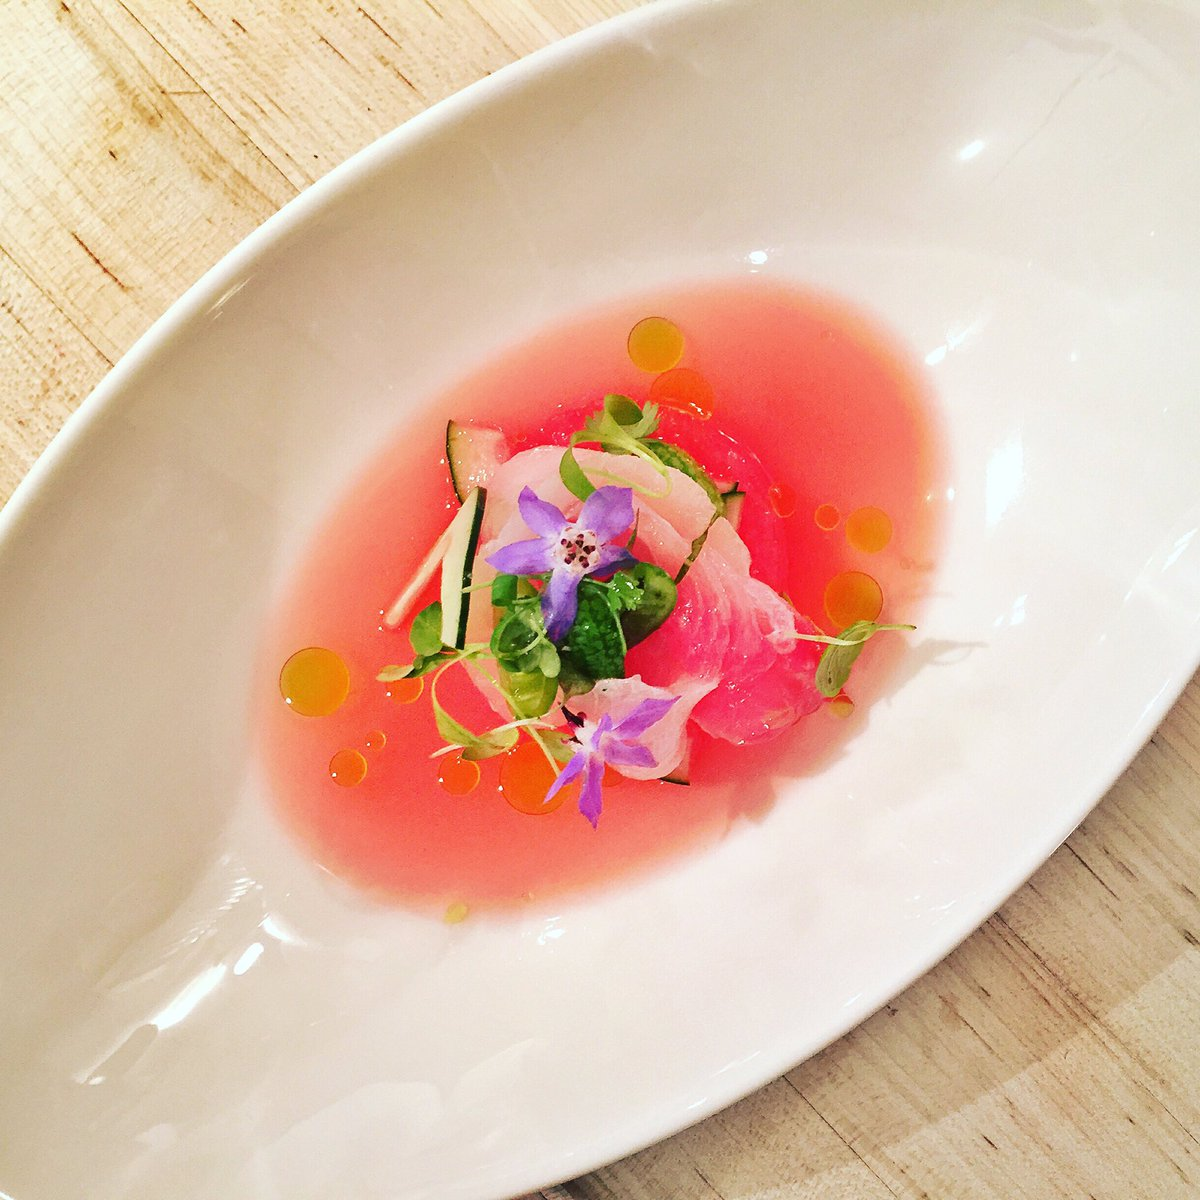 James Beard Foundation On Twitter Cured Hamachi With Cucumbers Watermelon And Borage At The Beardhouse Courtesy Of Craft Newyork